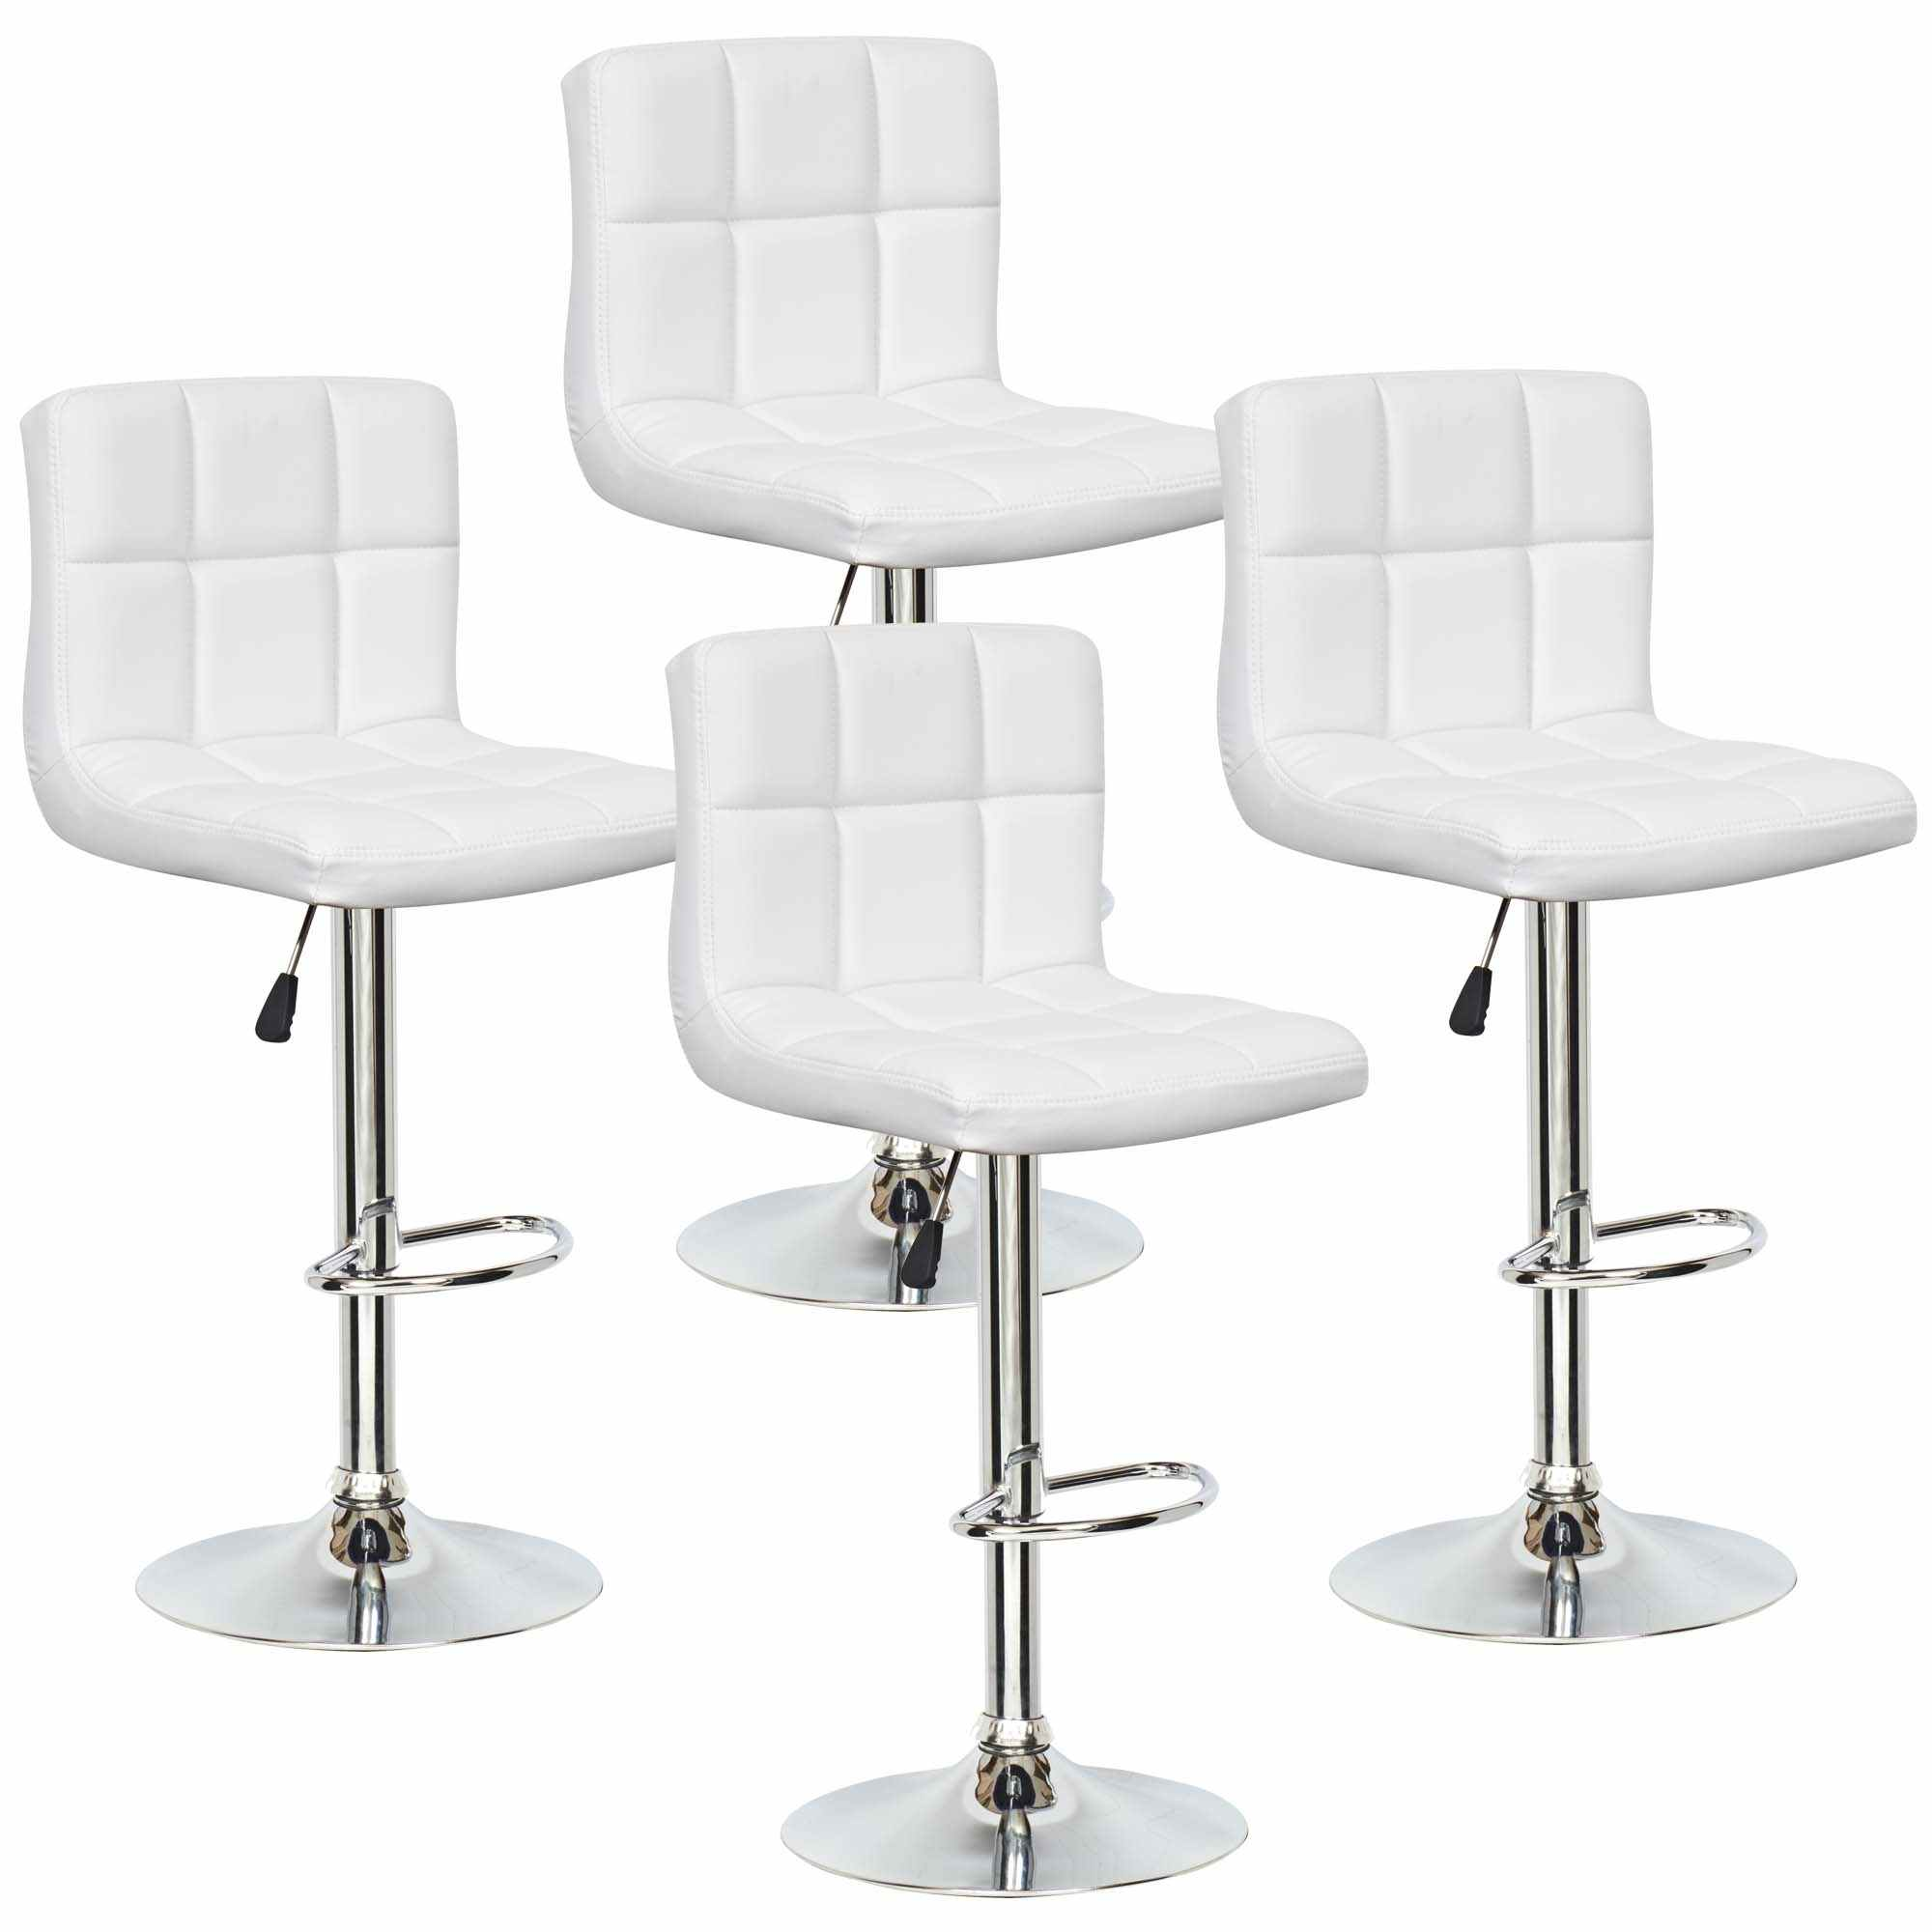 deco in paris lot de 4 tabourets de bar blanc scalo. Black Bedroom Furniture Sets. Home Design Ideas